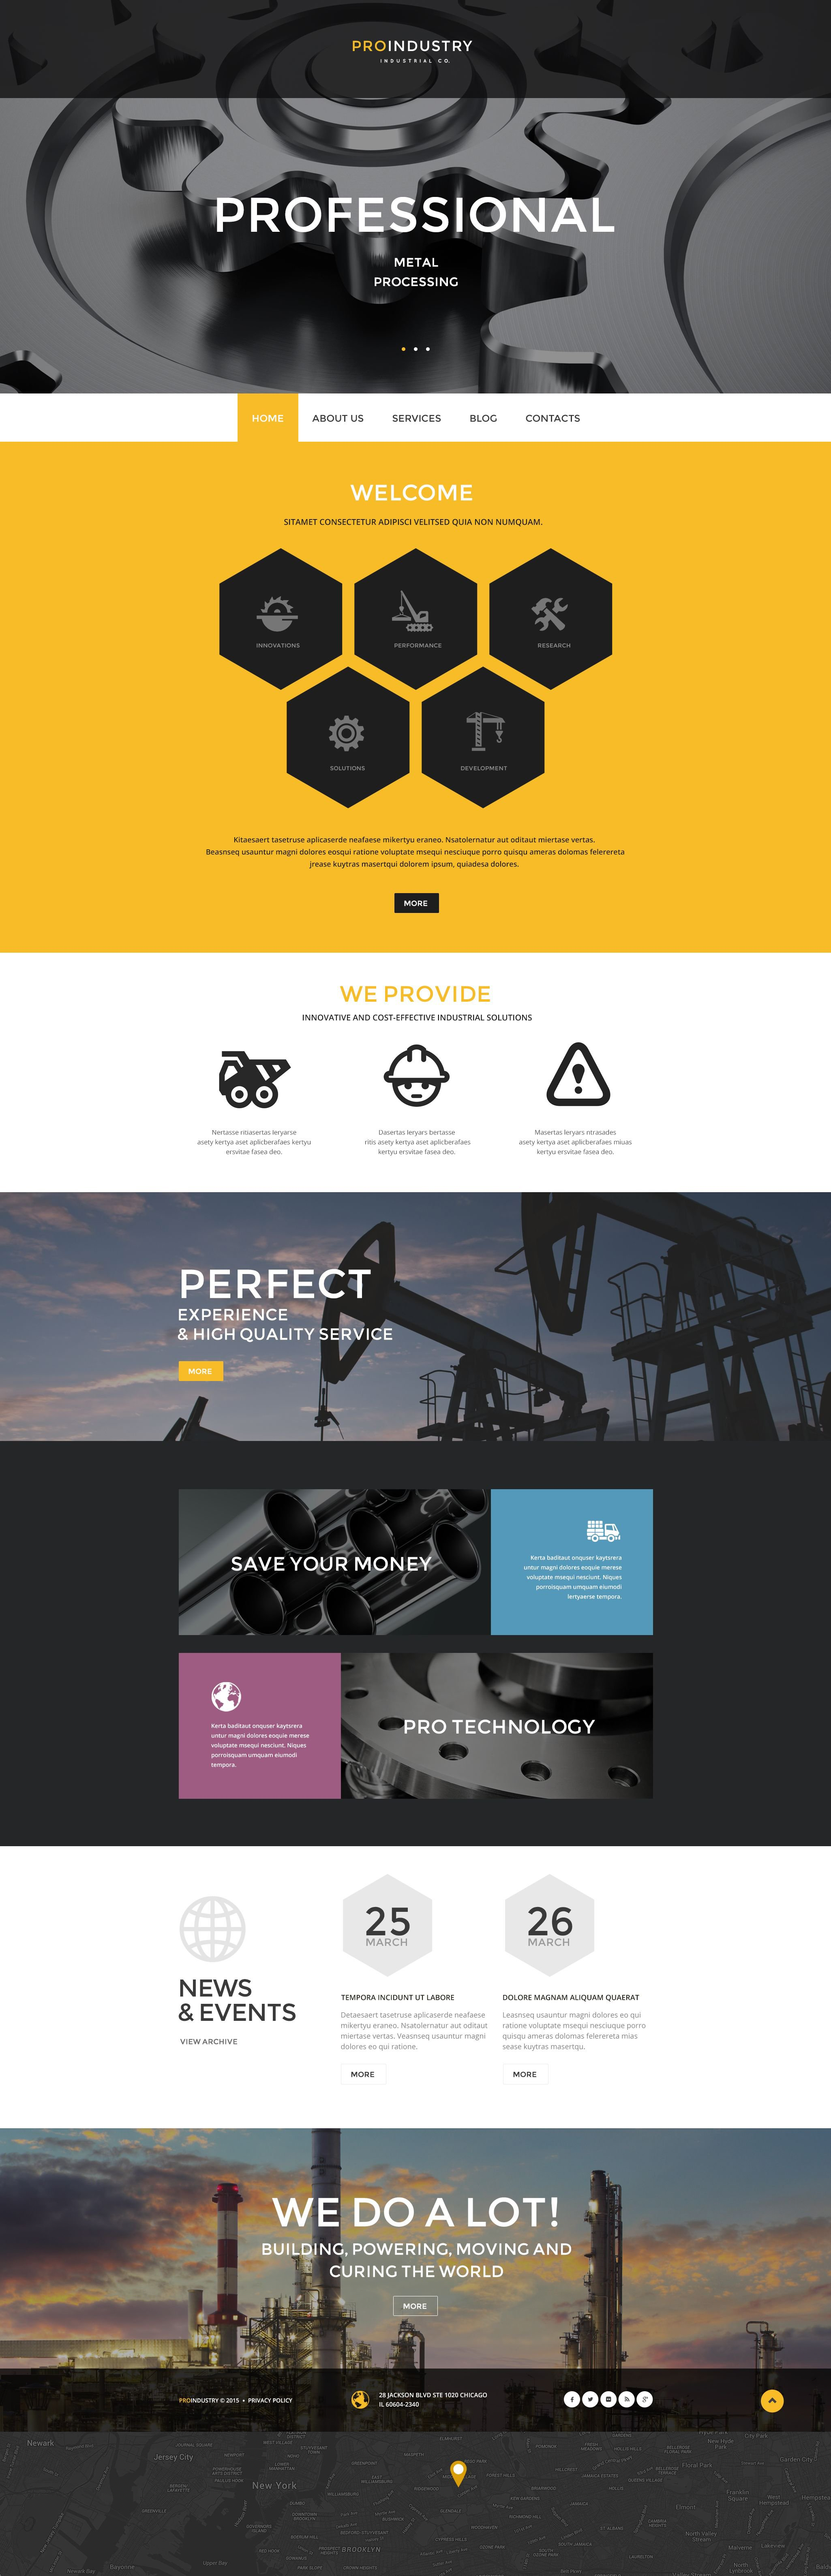 PRO Industry PSD Template - screenshot